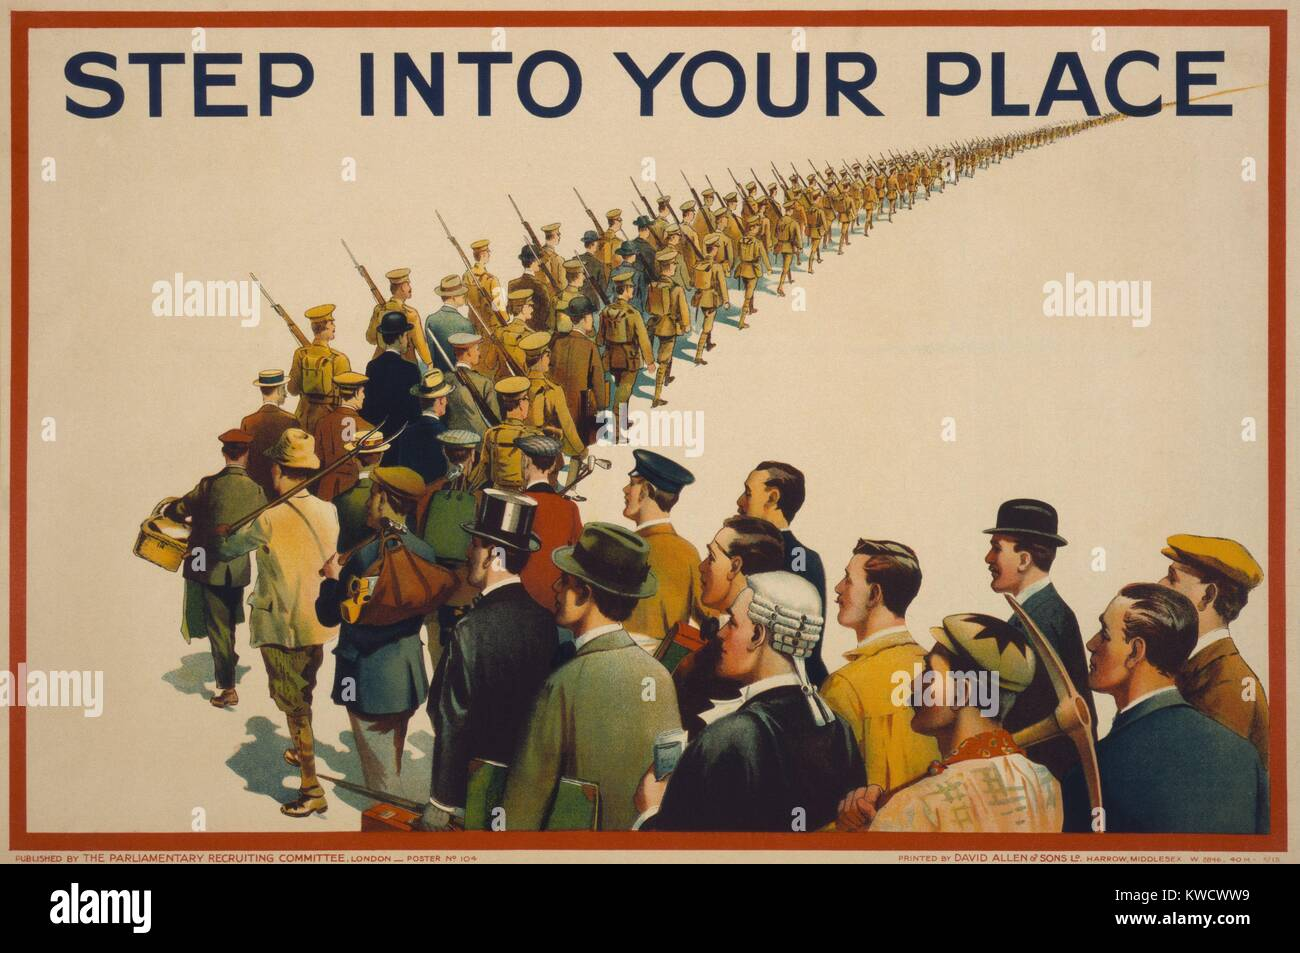 STEP INTO YOUR PLACE, reads a British World War 1 recruiting poster, 1915. A column of soldiers marches into the - Stock Image